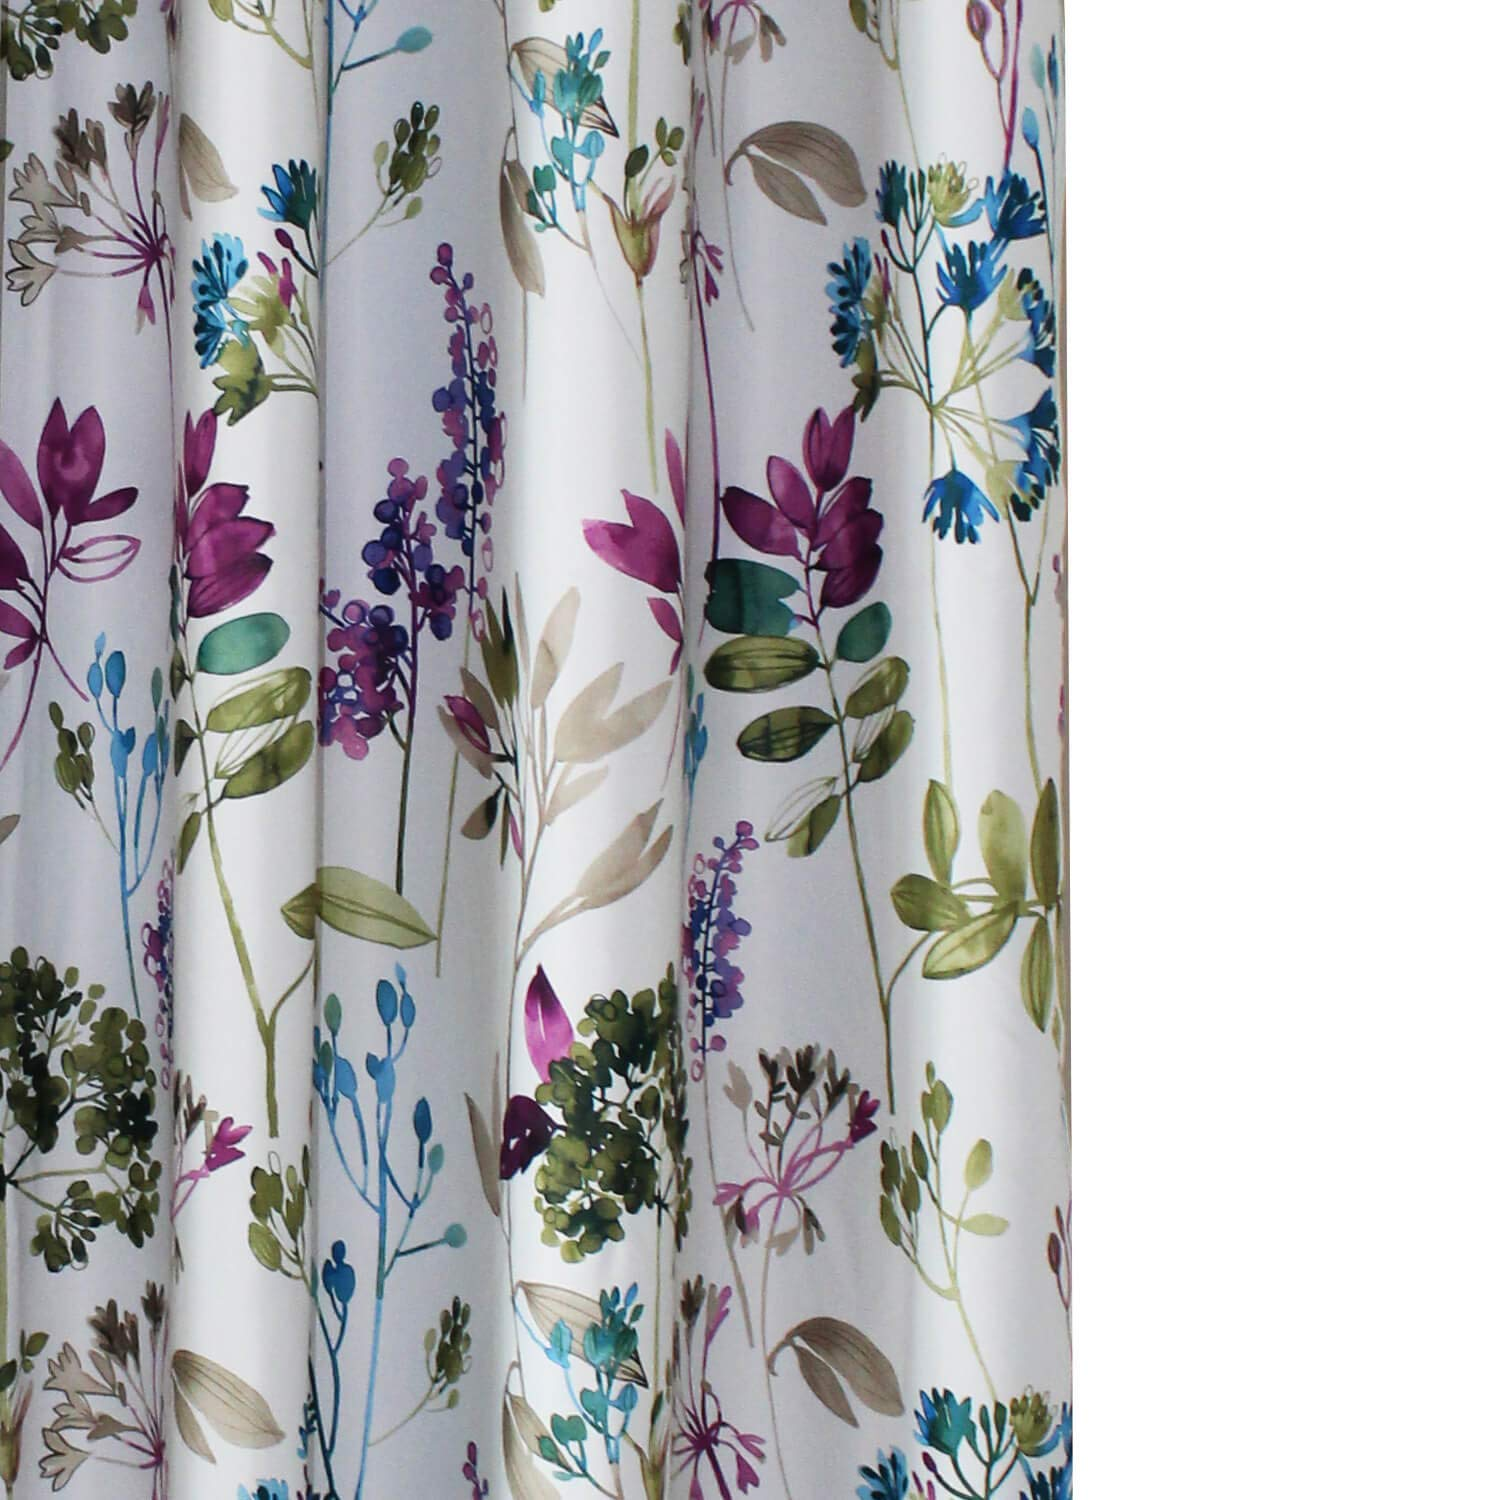 Anady Top Purple Blue Leaf Curtains Blackout Flower